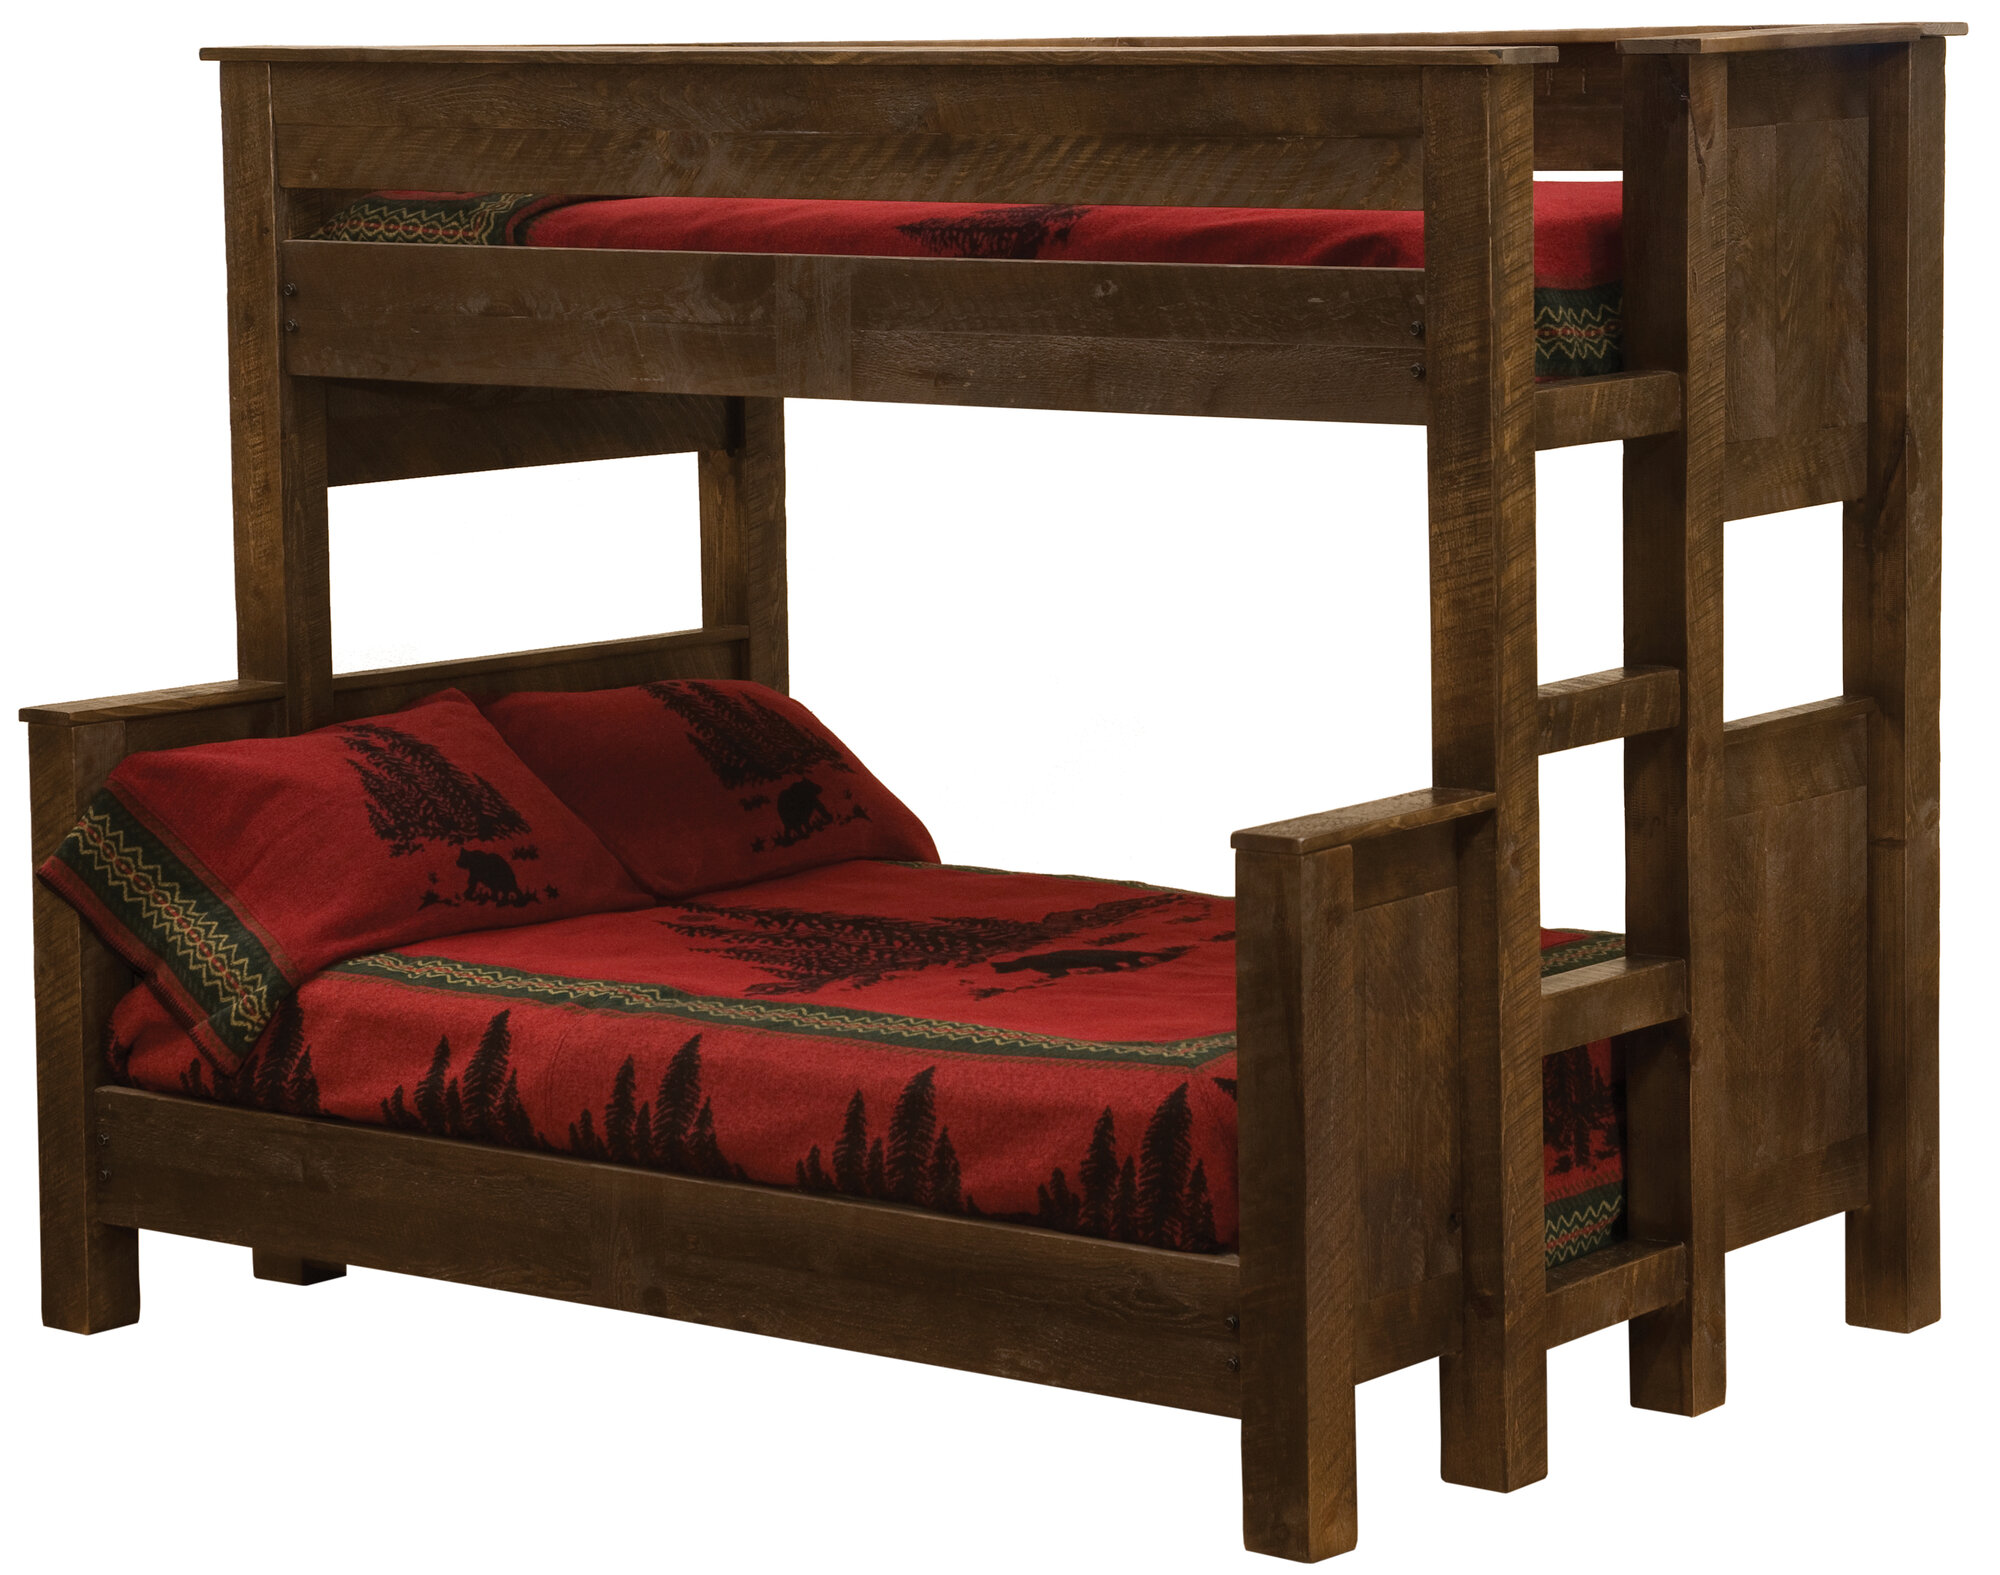 Fireside Lodge Frontier Standard Bunk Bed with Left Ladder Finish: Driftwood, Configuration: Double over Double